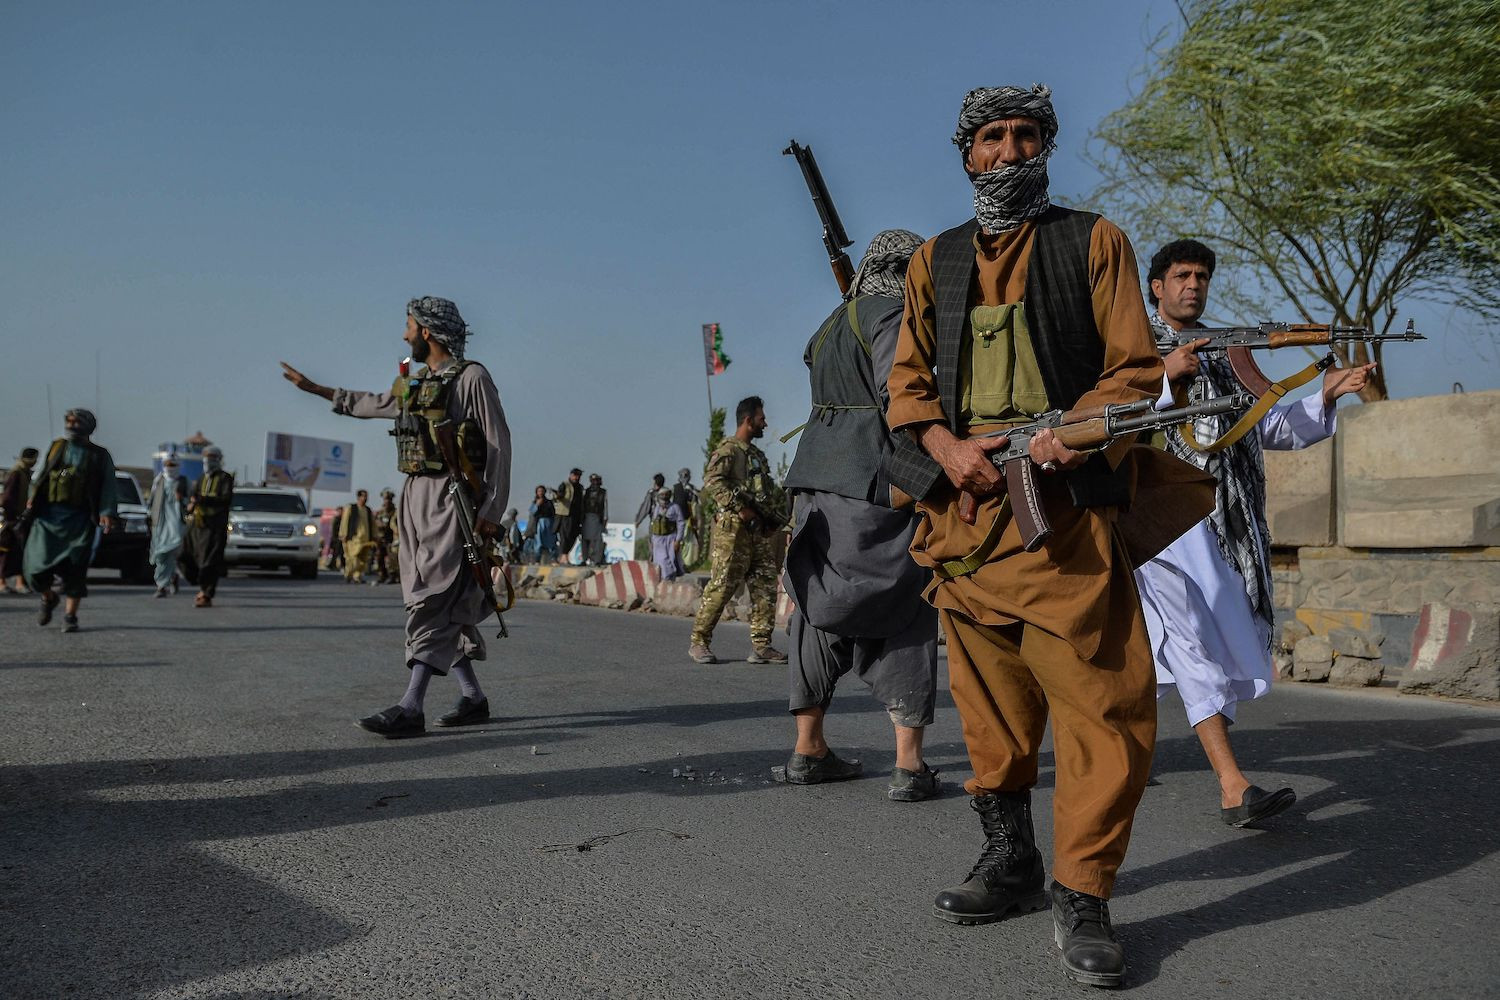 Afghan security personnel and Afghan militia fighting against Taliban, stand guard in Enjil district of Herat province on July 30, 2021. (Photo by Hoshang Hashimi / AFP) (Photo by HOSHANG HASHIMI/AFP via Getty Images)